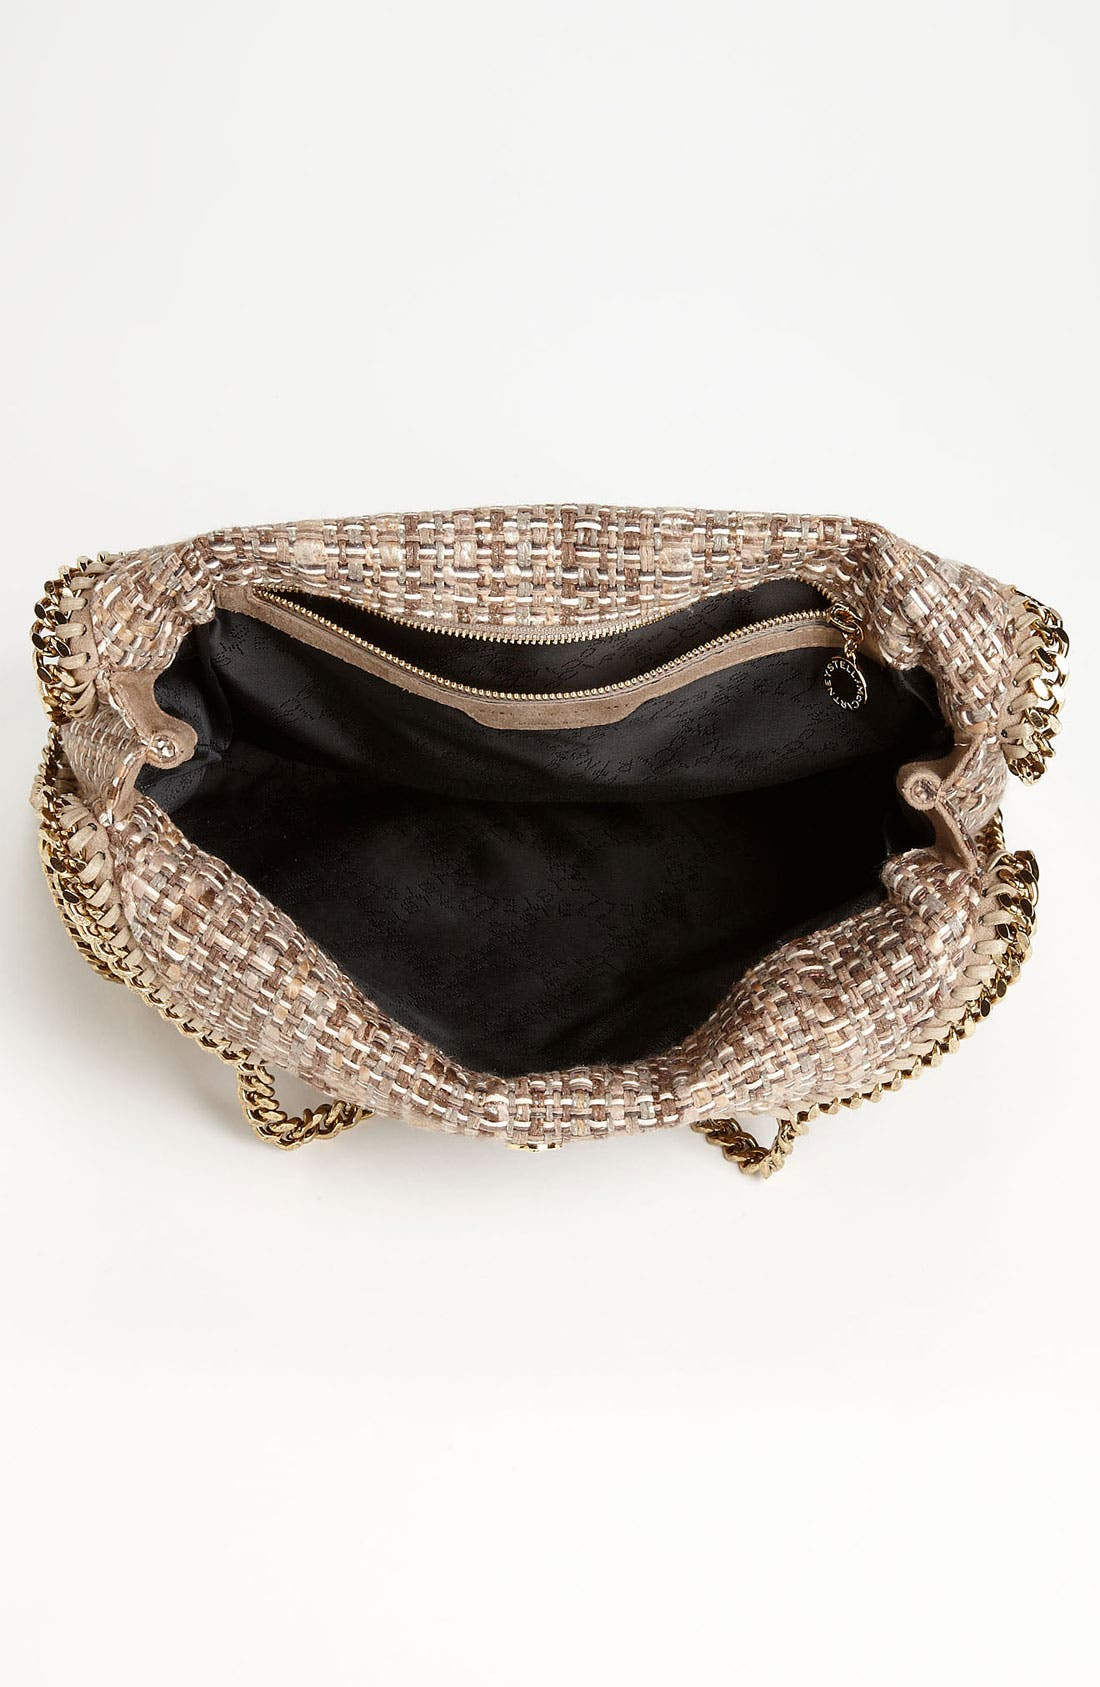 Alternate Image 3  - Stella McCartney 'Falabella' Metallic Bouclé Foldover Tote